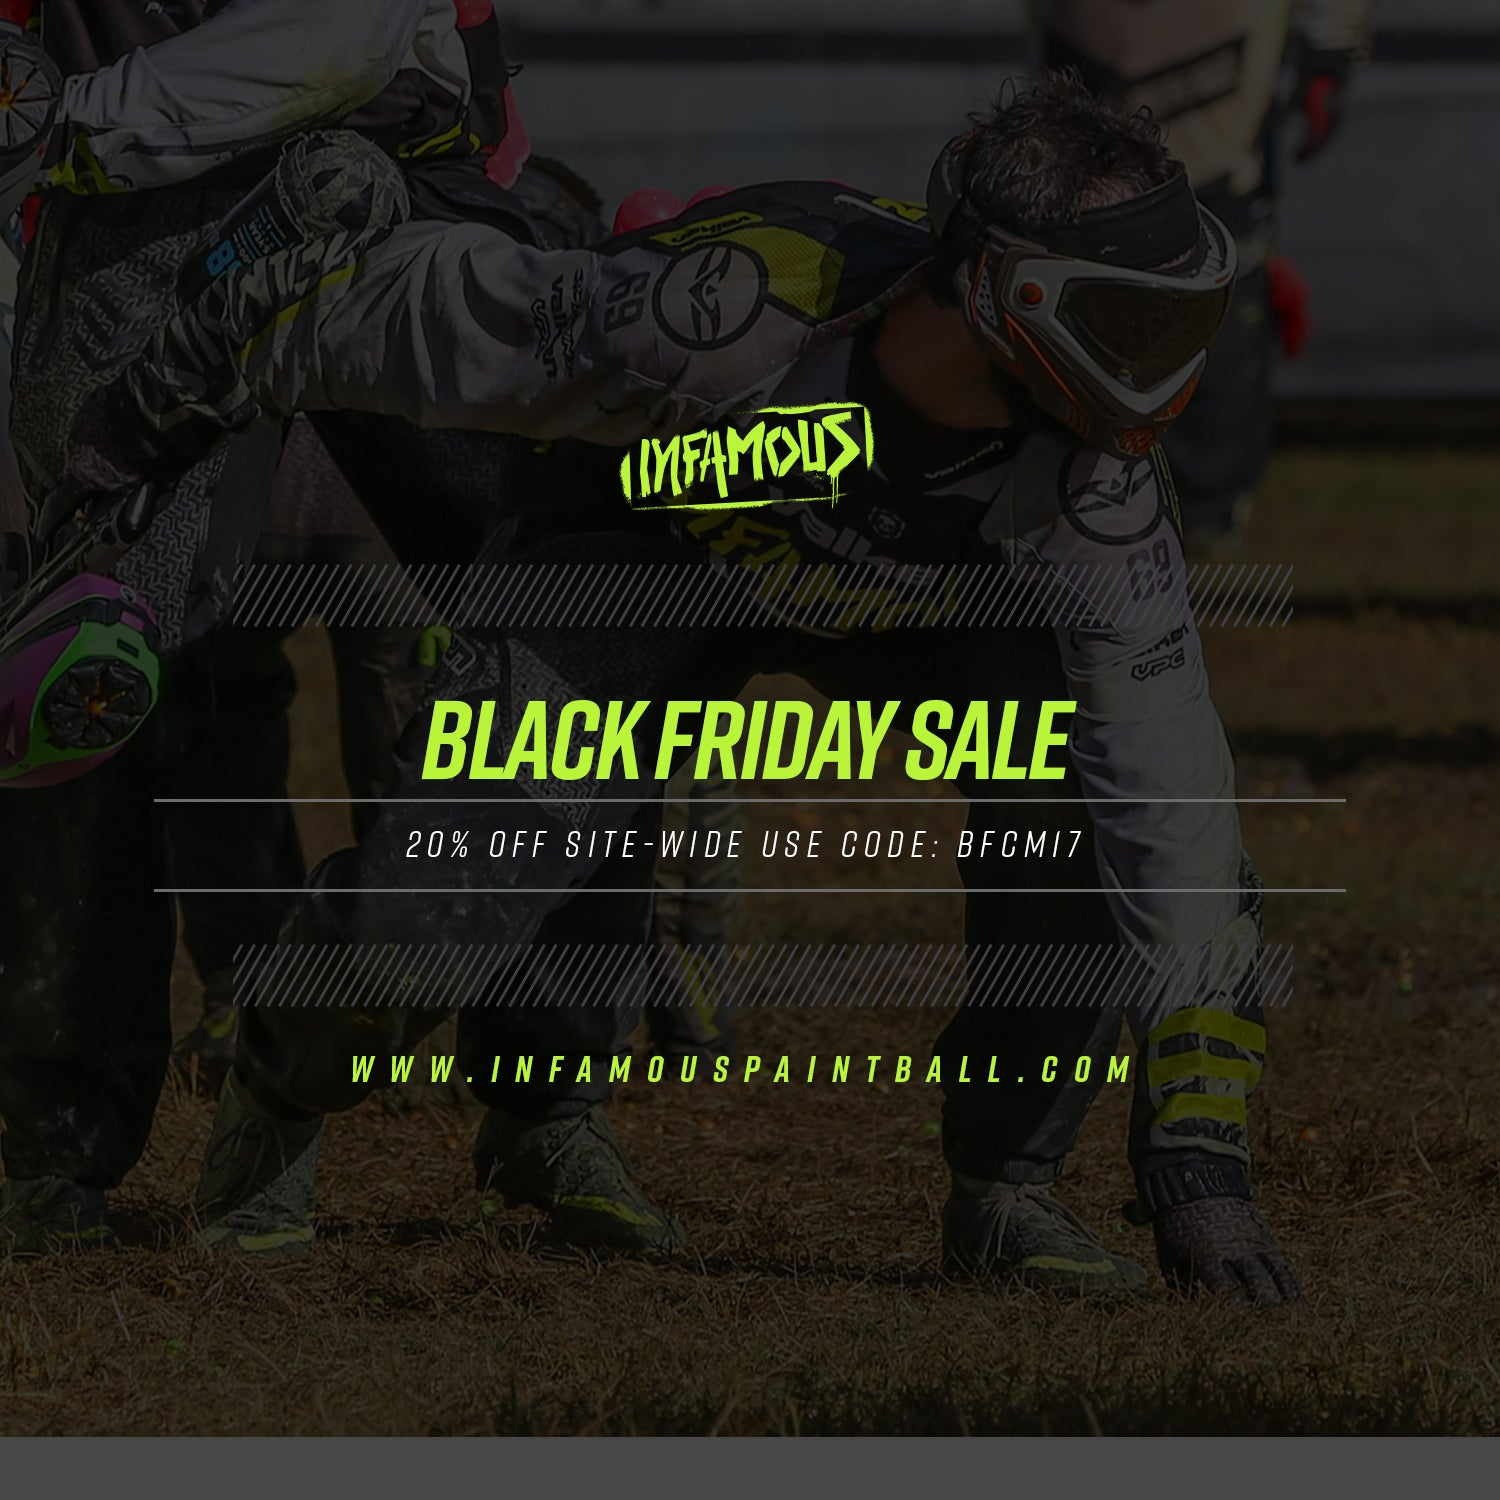 Black Friday Paintball Sales With Infamous